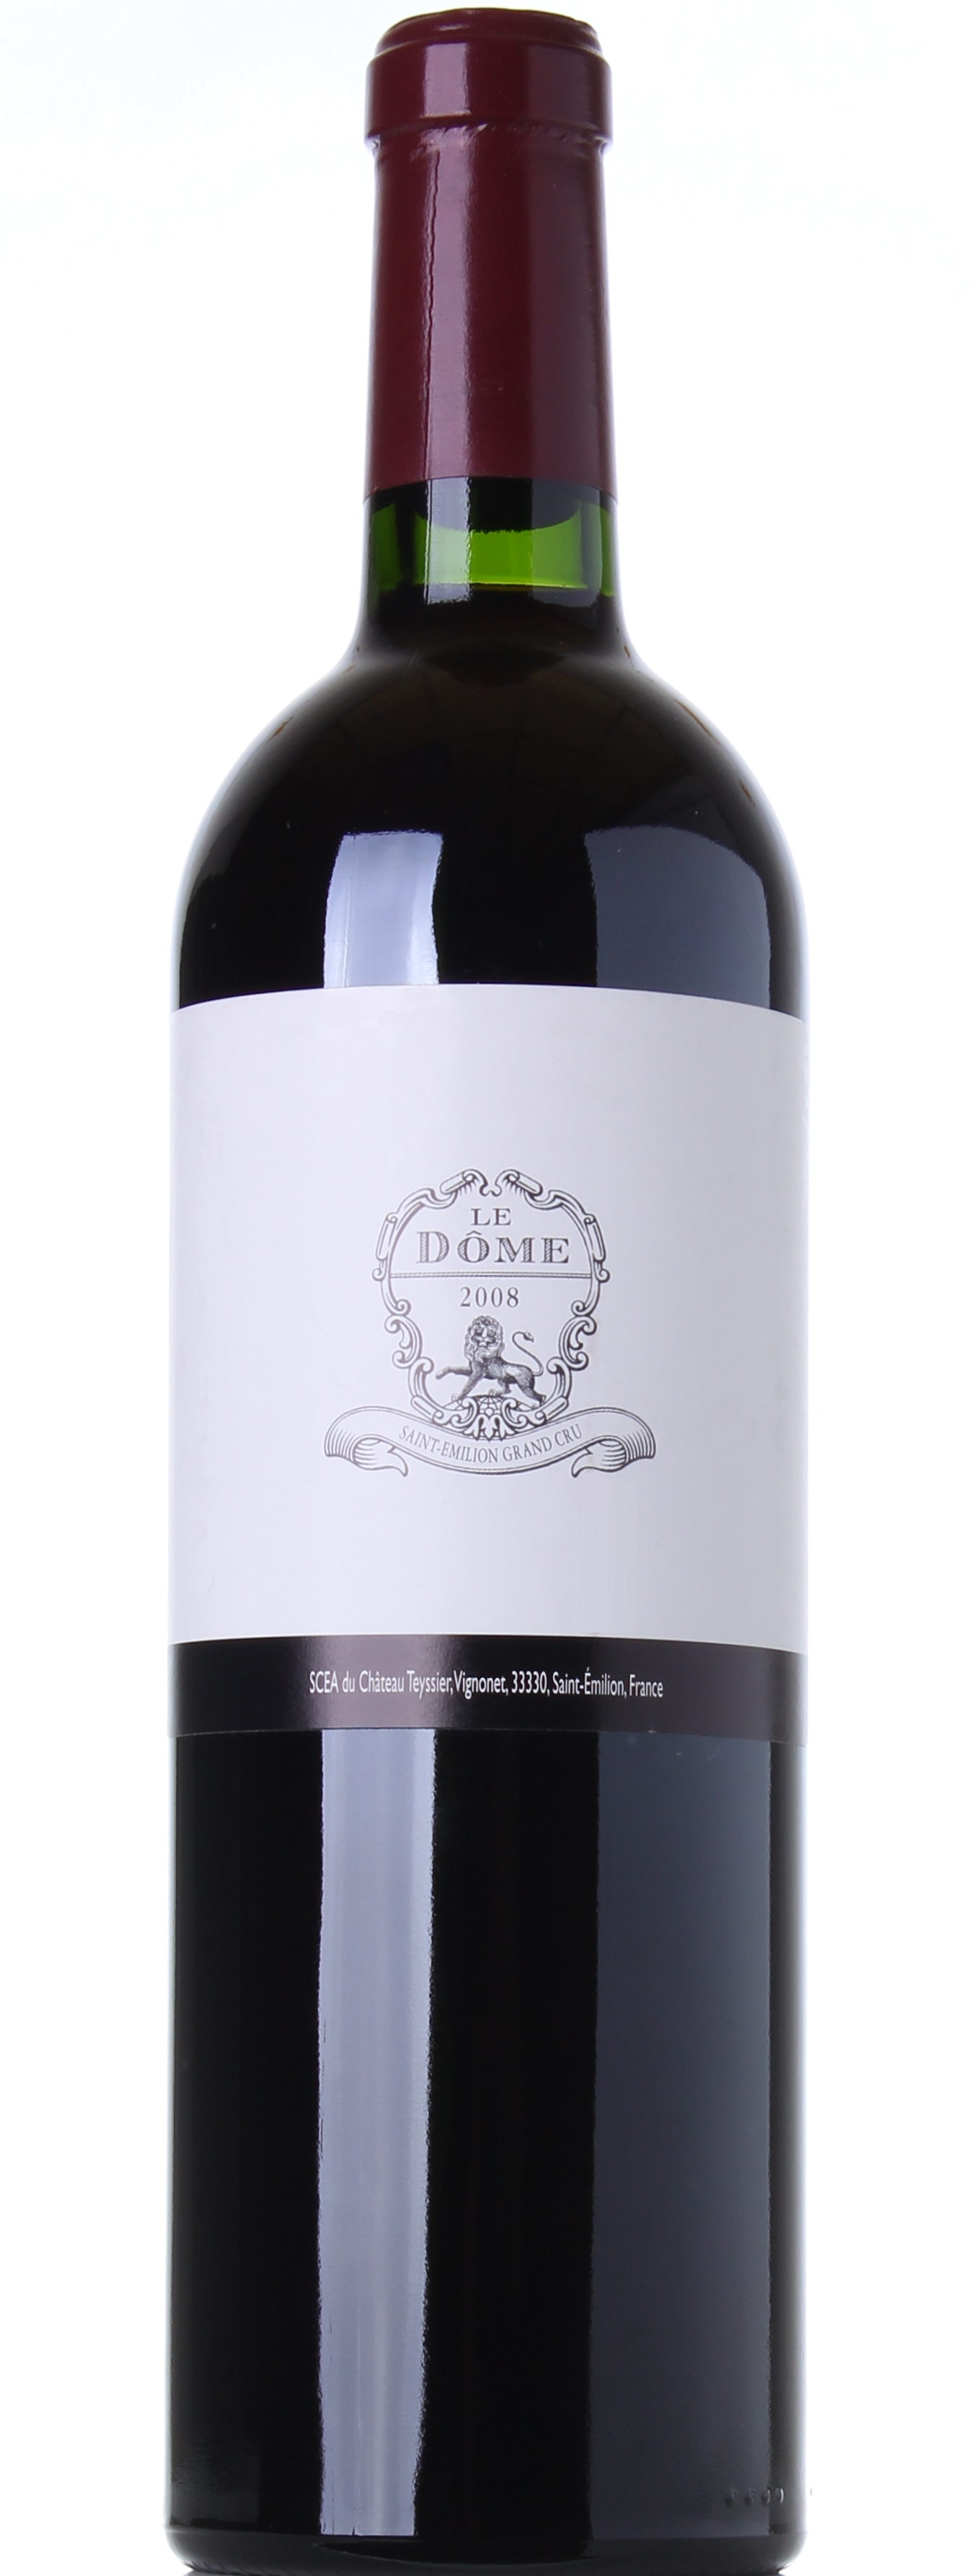 CHATEAU TEYSSIER LE DOME 2008